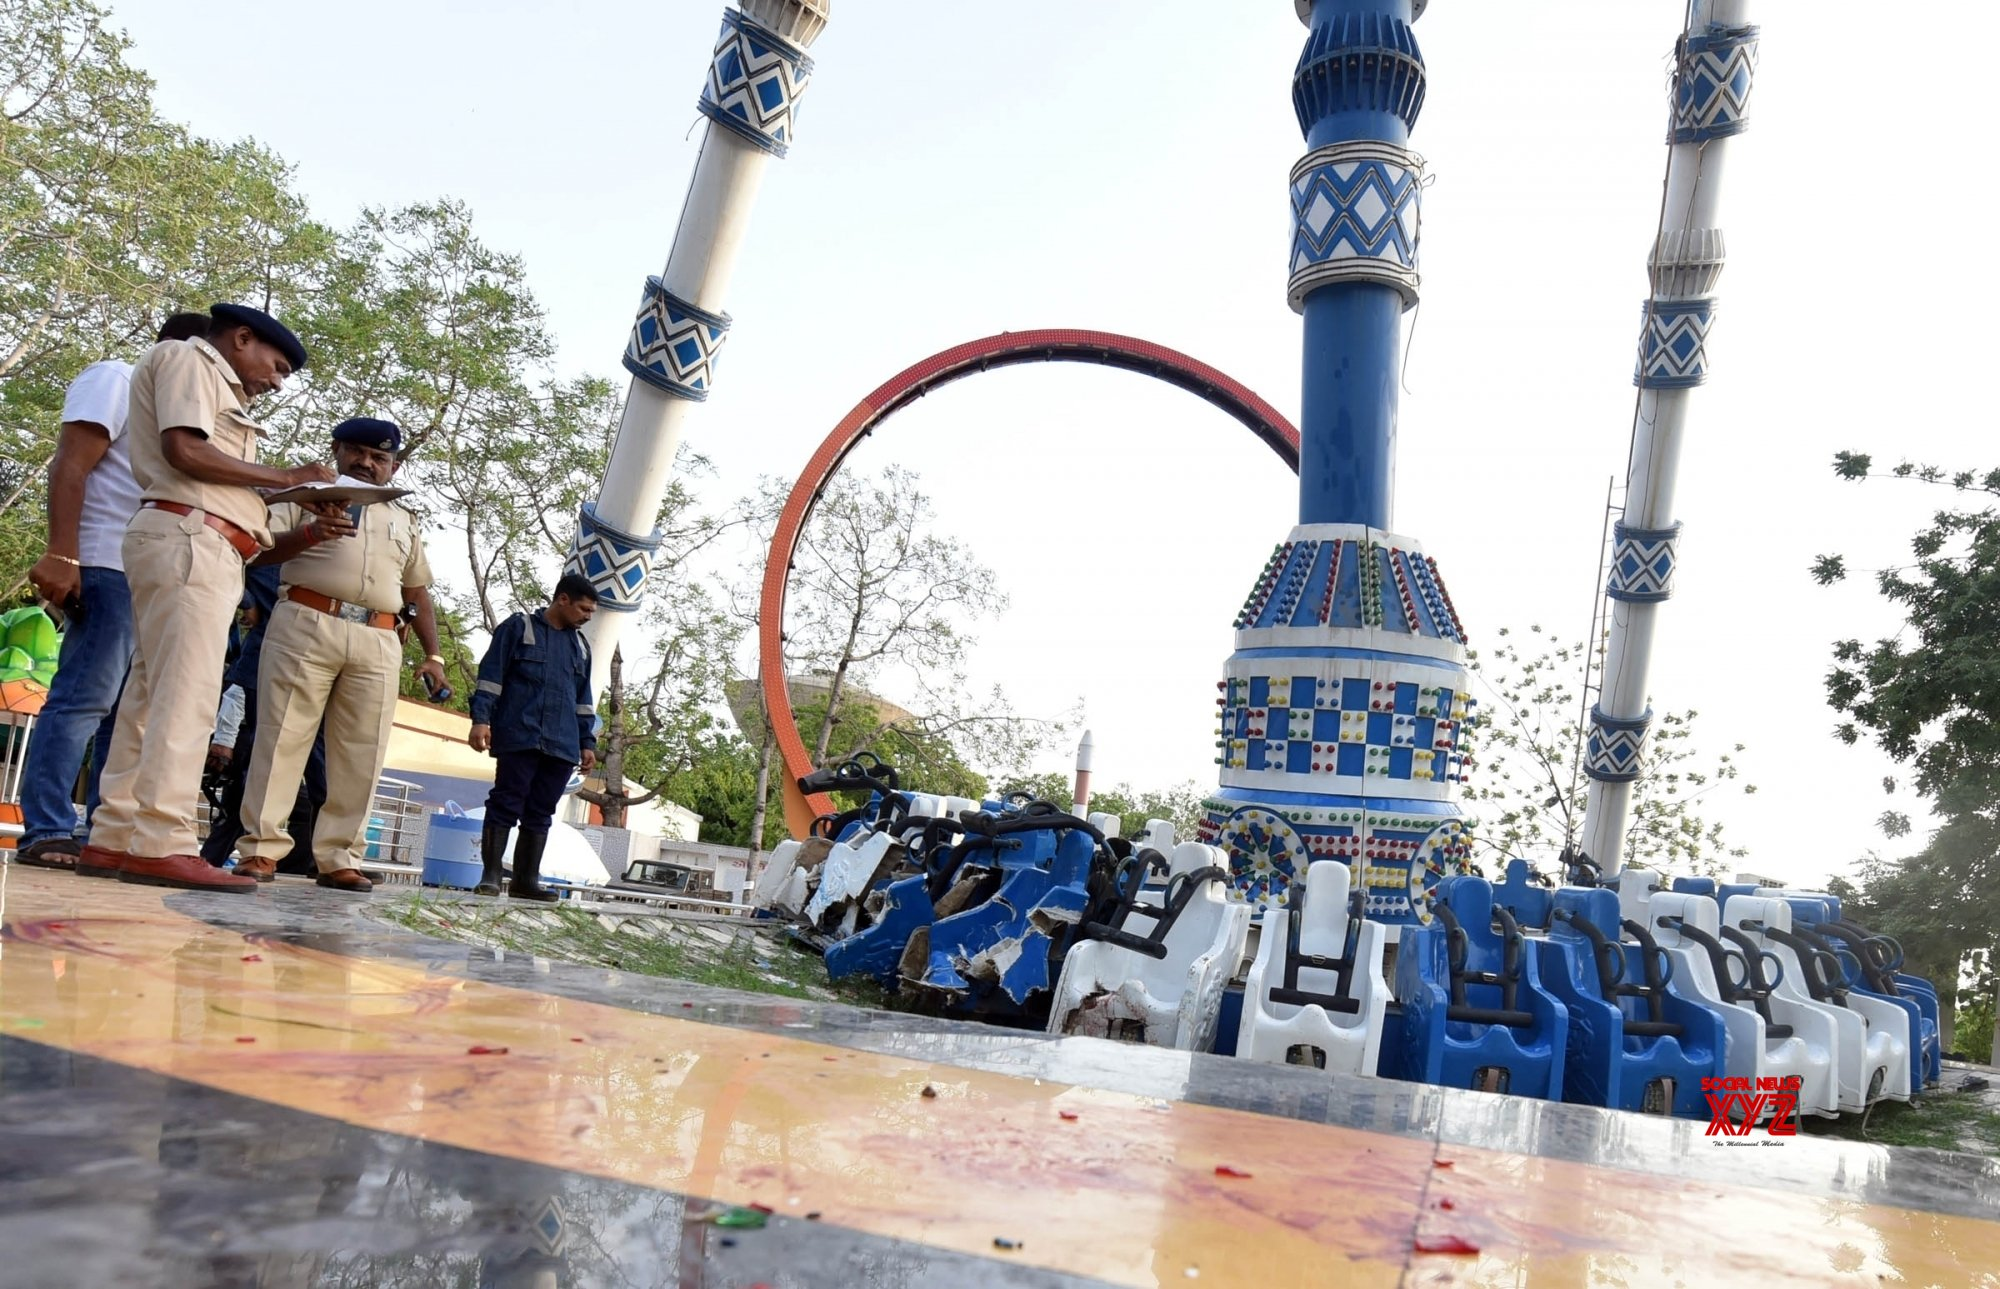 Ahmedabad: Three killed, 31 injured in amusement park accident in Ahmedabad #Gallery